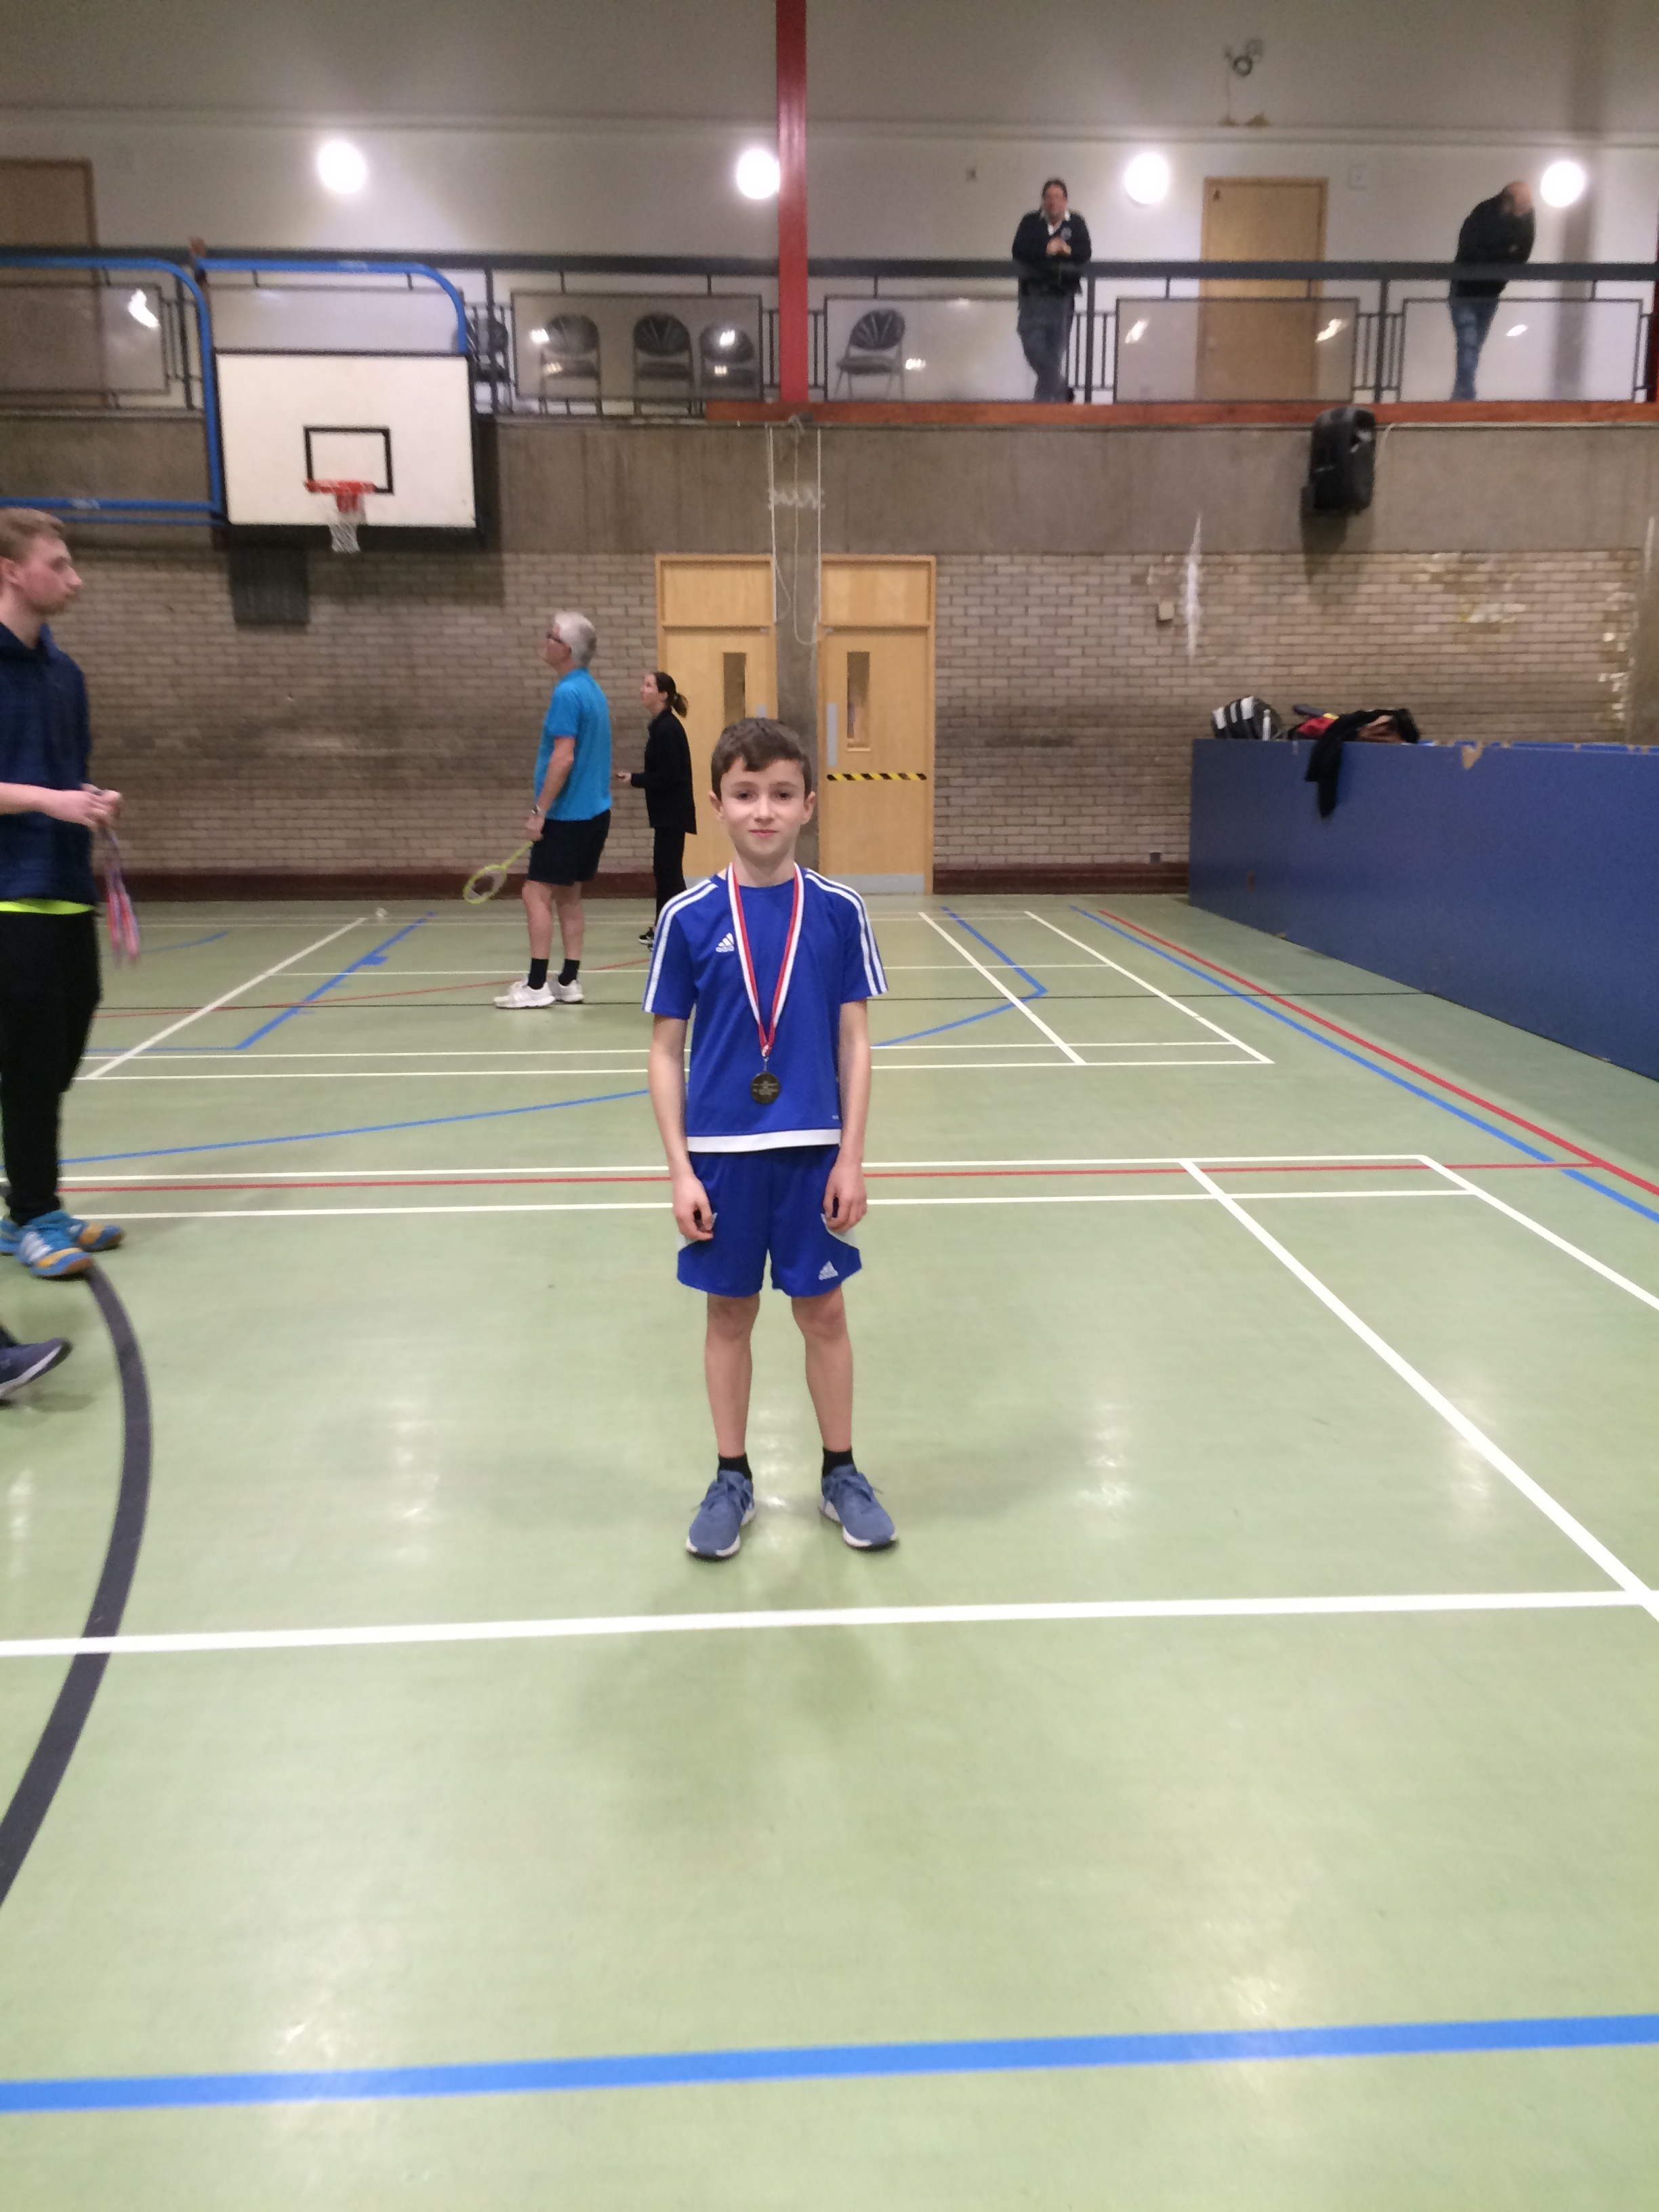 U11 boys winner: Owen Rylance